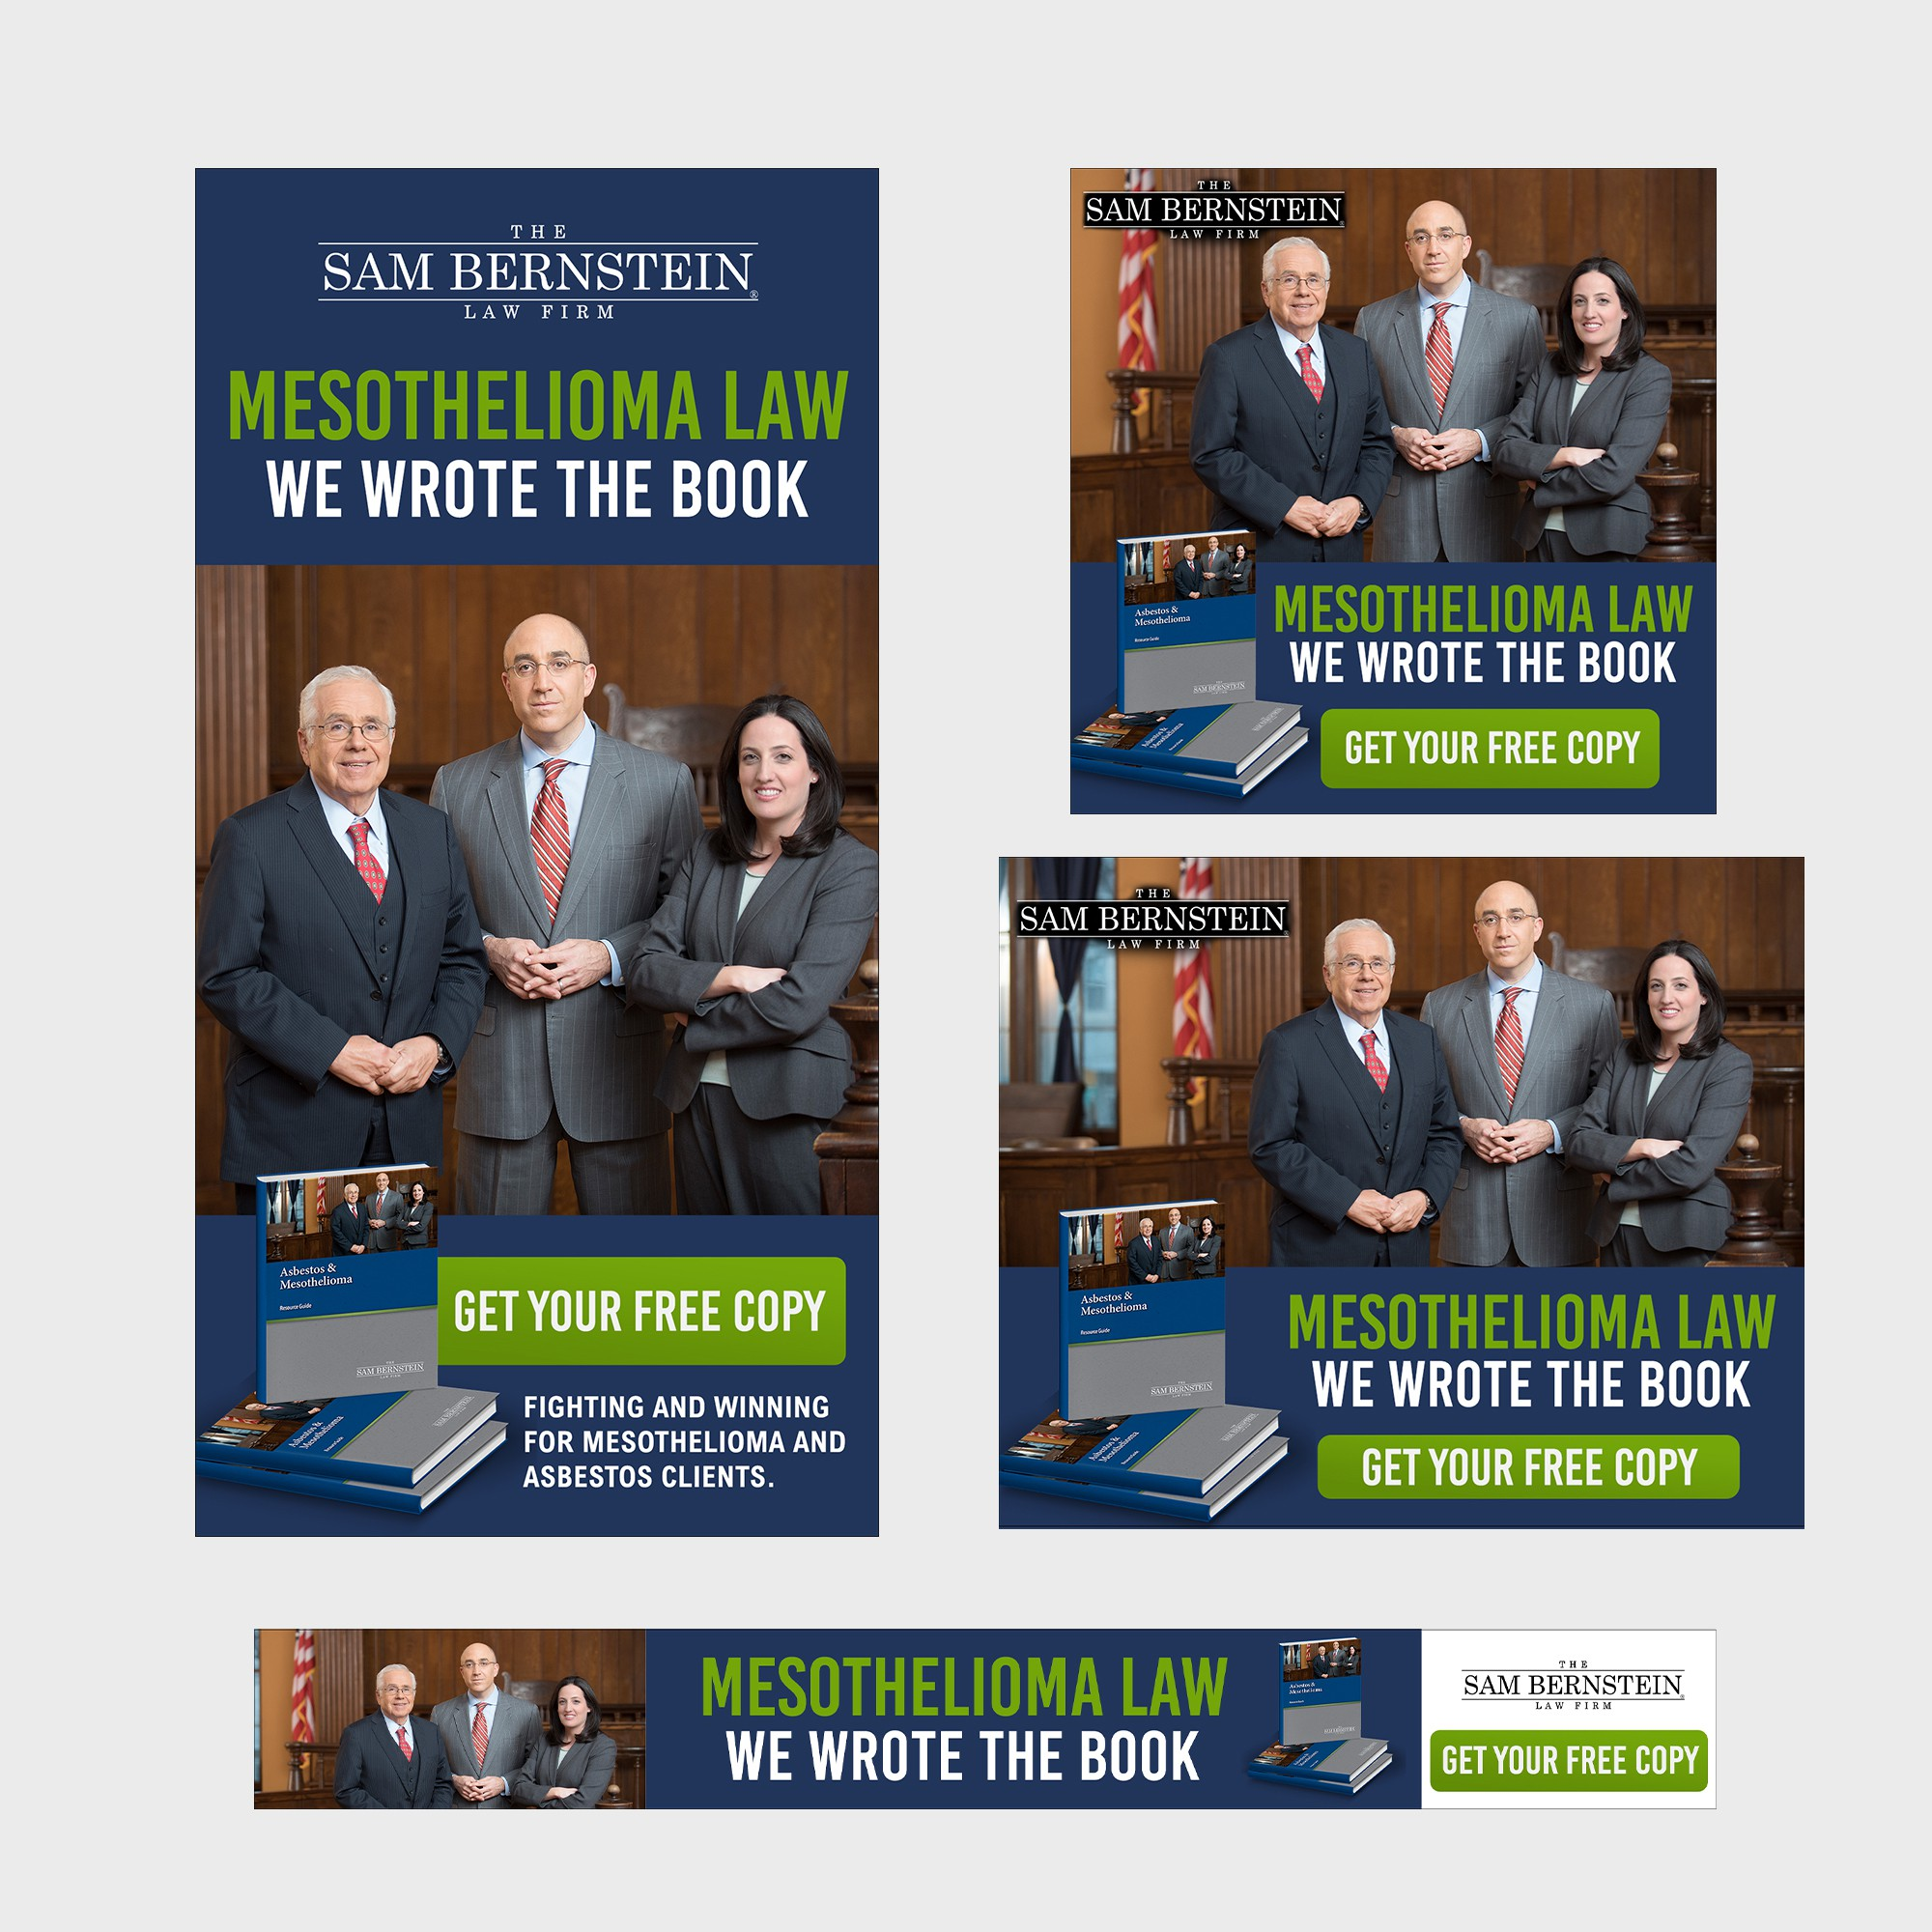 Display Ads for Mesothelioma Book